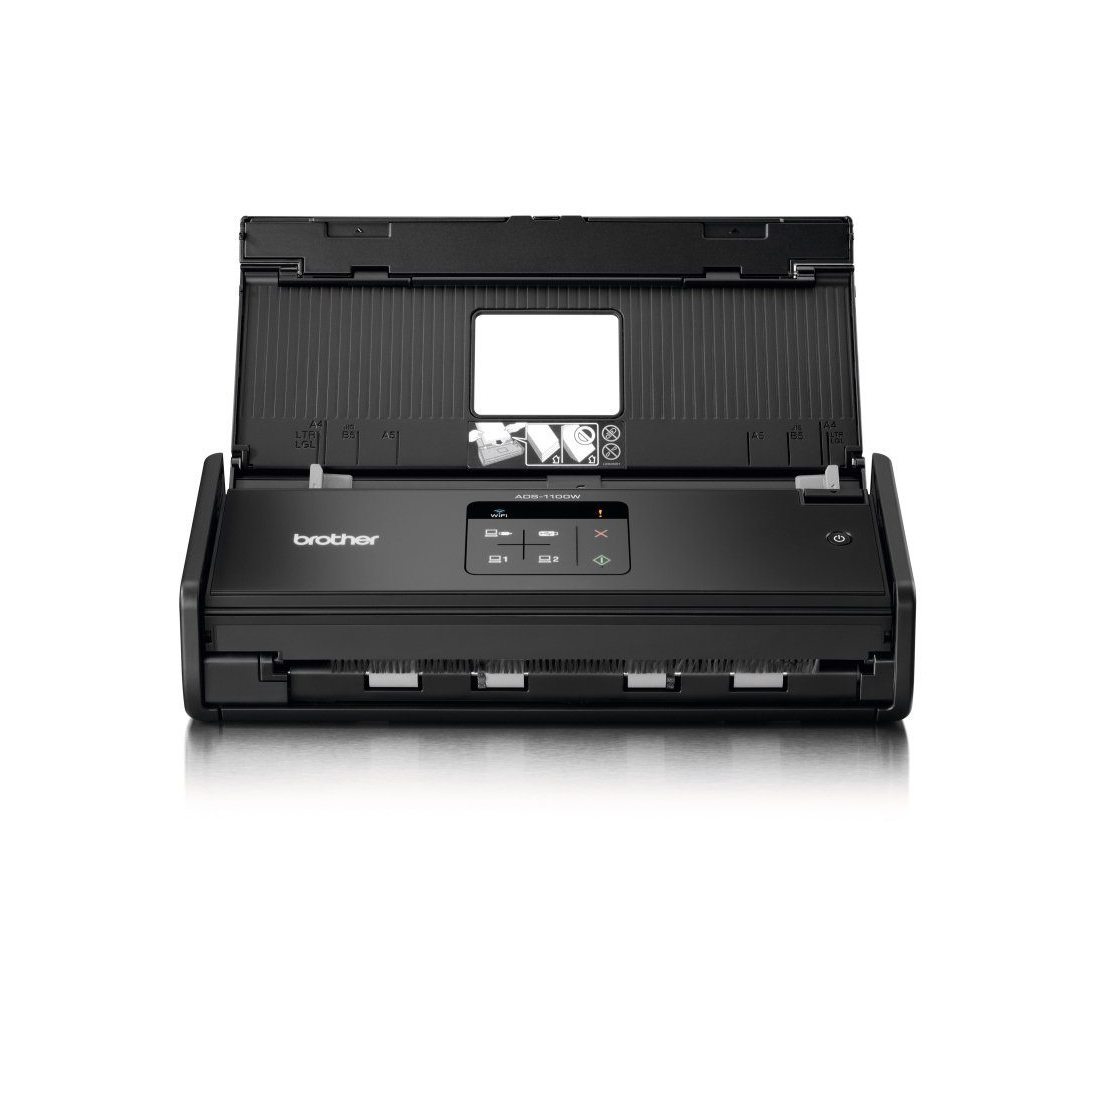 Brother ADS-1100W Scanner Compact |A4 |Recto-Verso |16 ppm|Scan vers Cloud | Wi-Fi | Chargeur 20 feuilles| Couleur | Noir/Bla